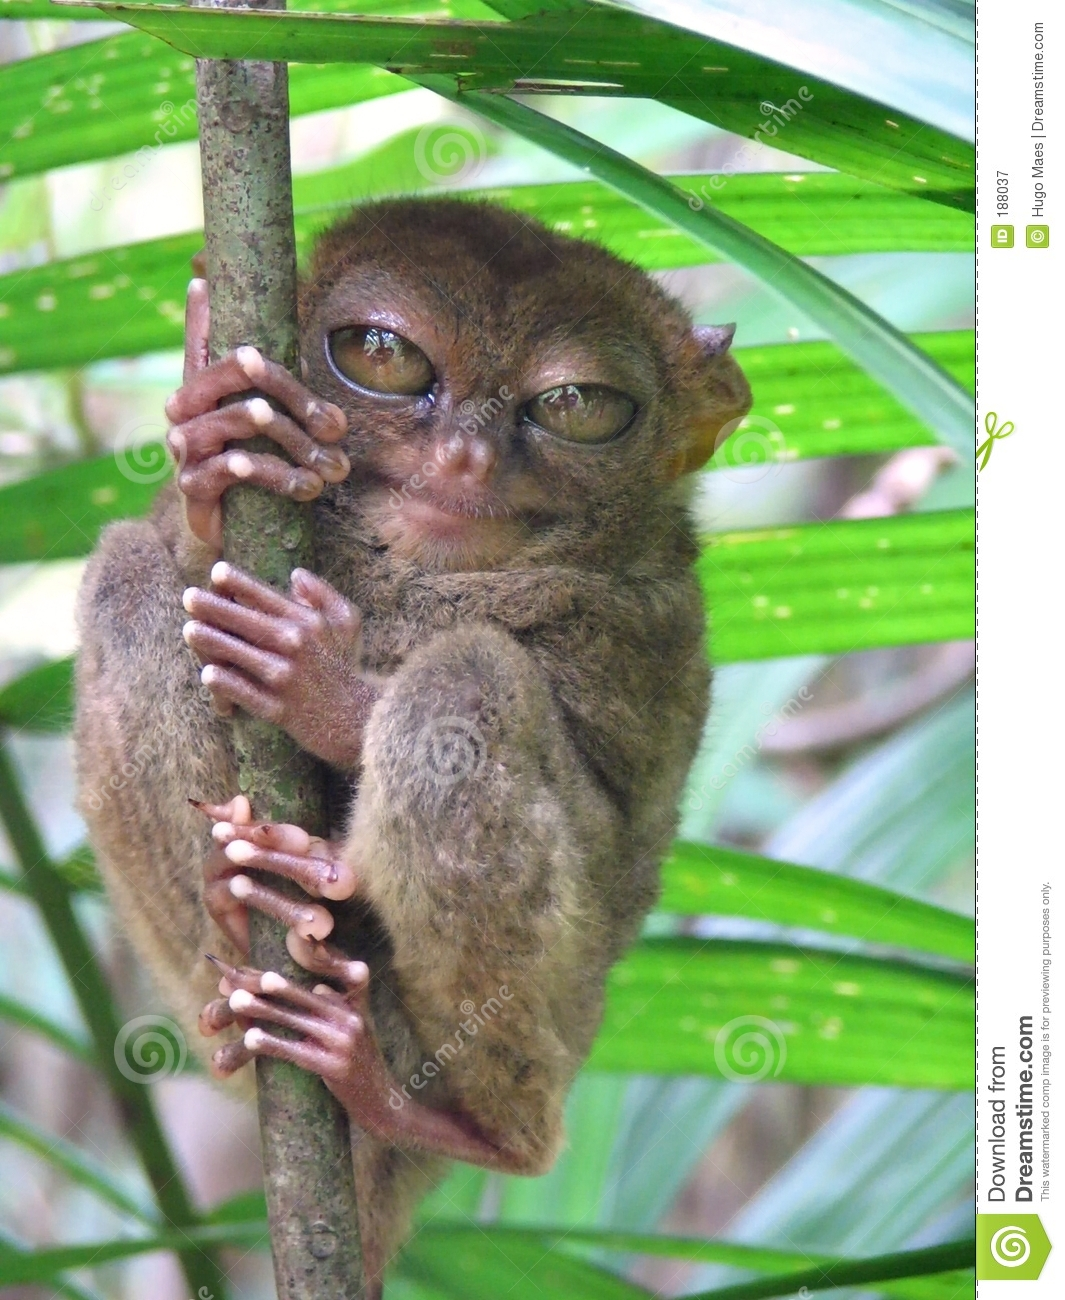 smallest primate in the wild, NOT in a zoo. Model for Spielberg's E.T ...